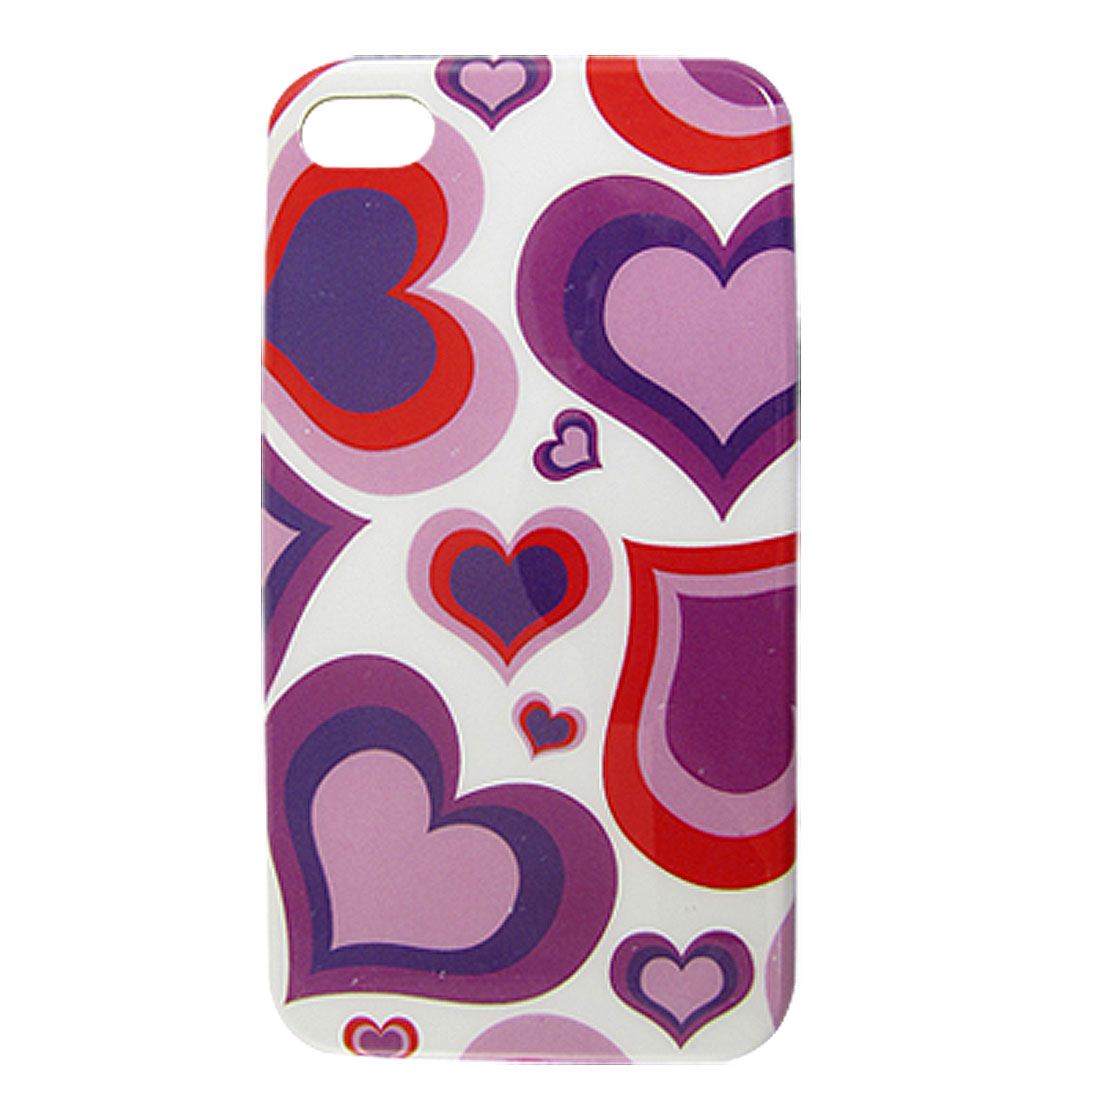 IMD Heart Pattern Hard Plastic Protective Cover for iPhone 4 4G 4S